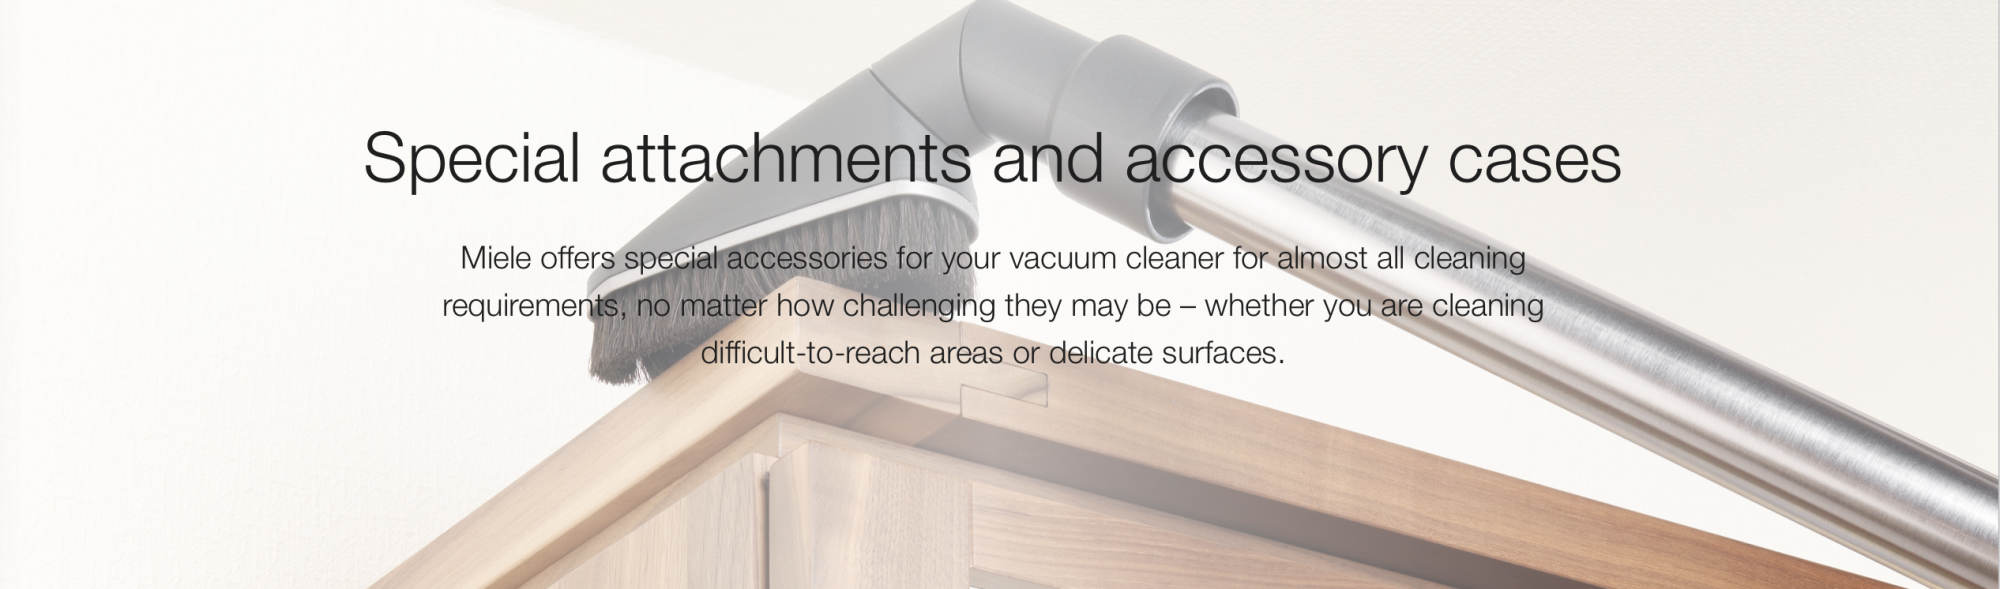 Special attachments and accessory cases